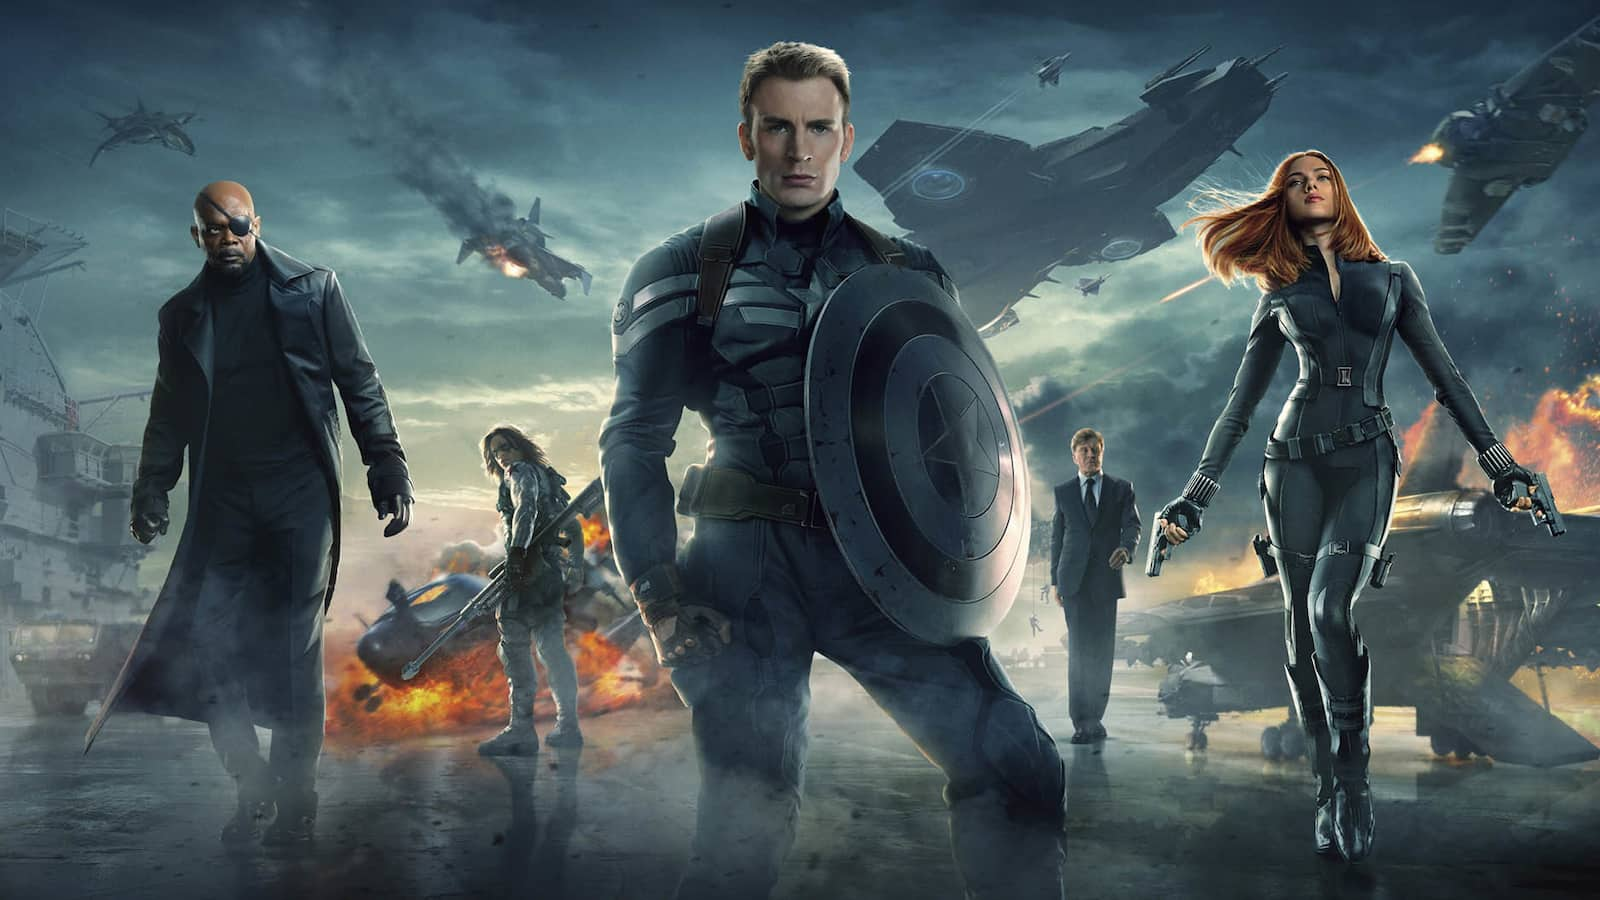 captain-america-the-winter-soldier-kop-2014